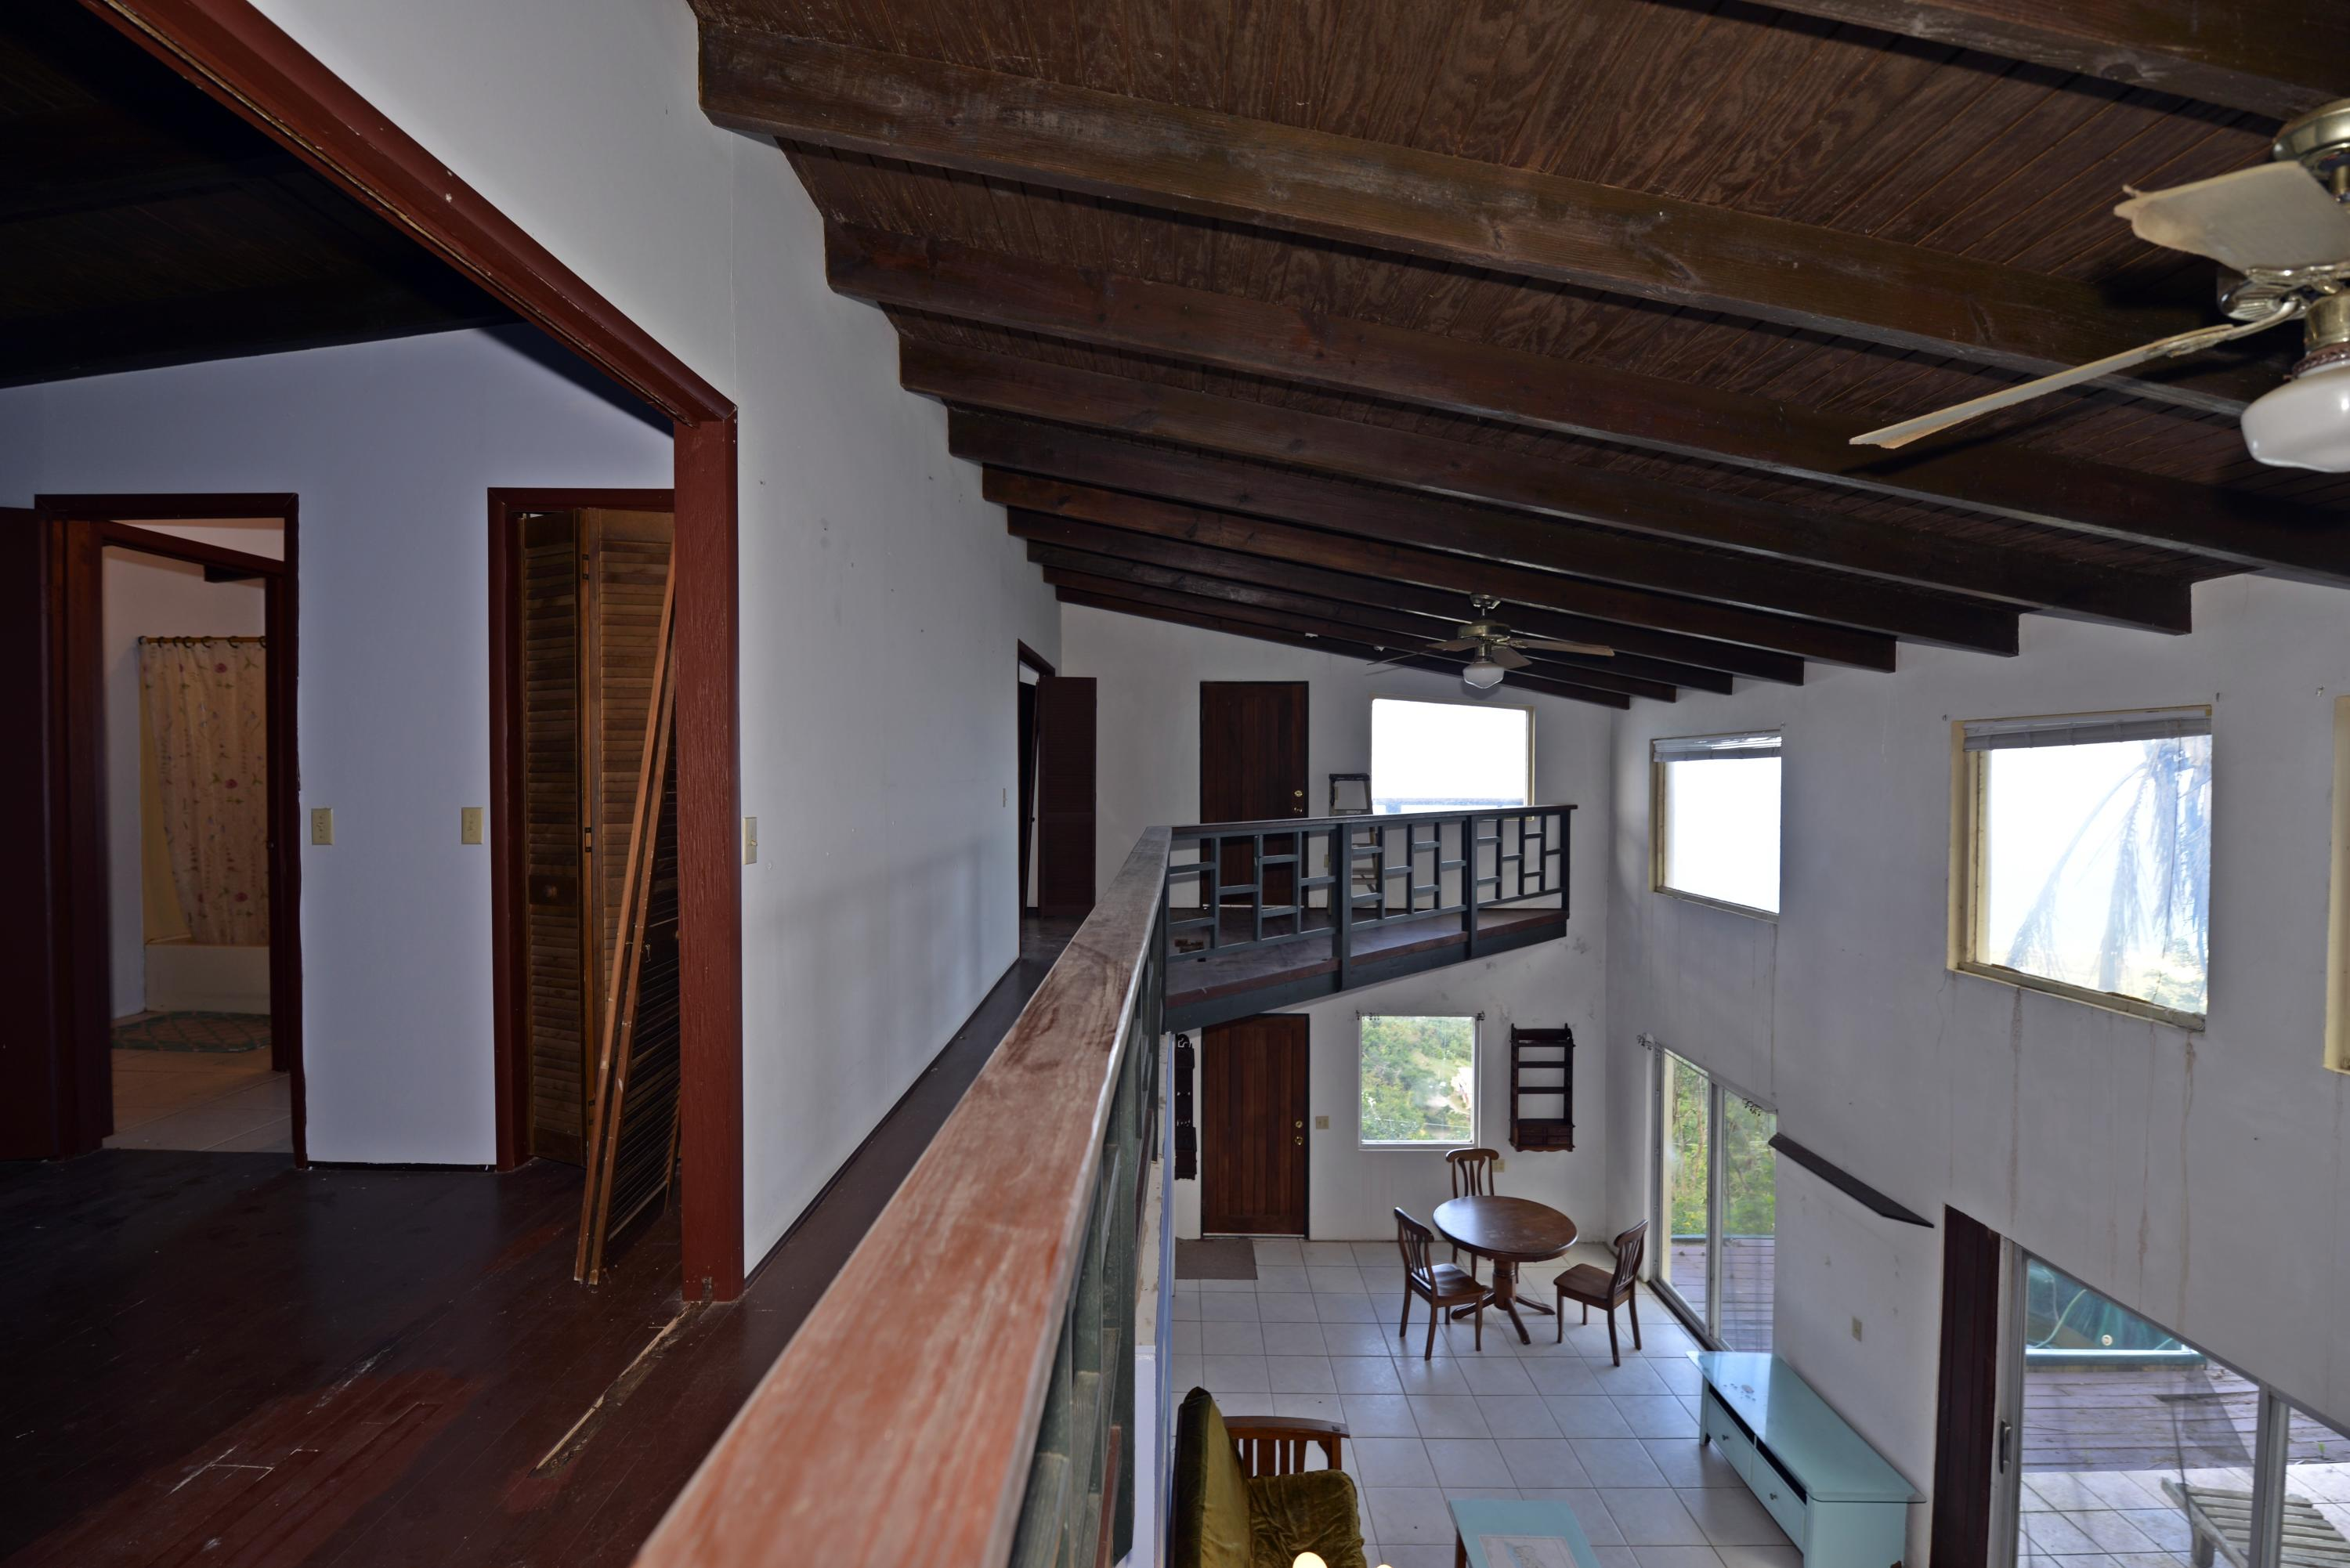 View from upper level stairwell